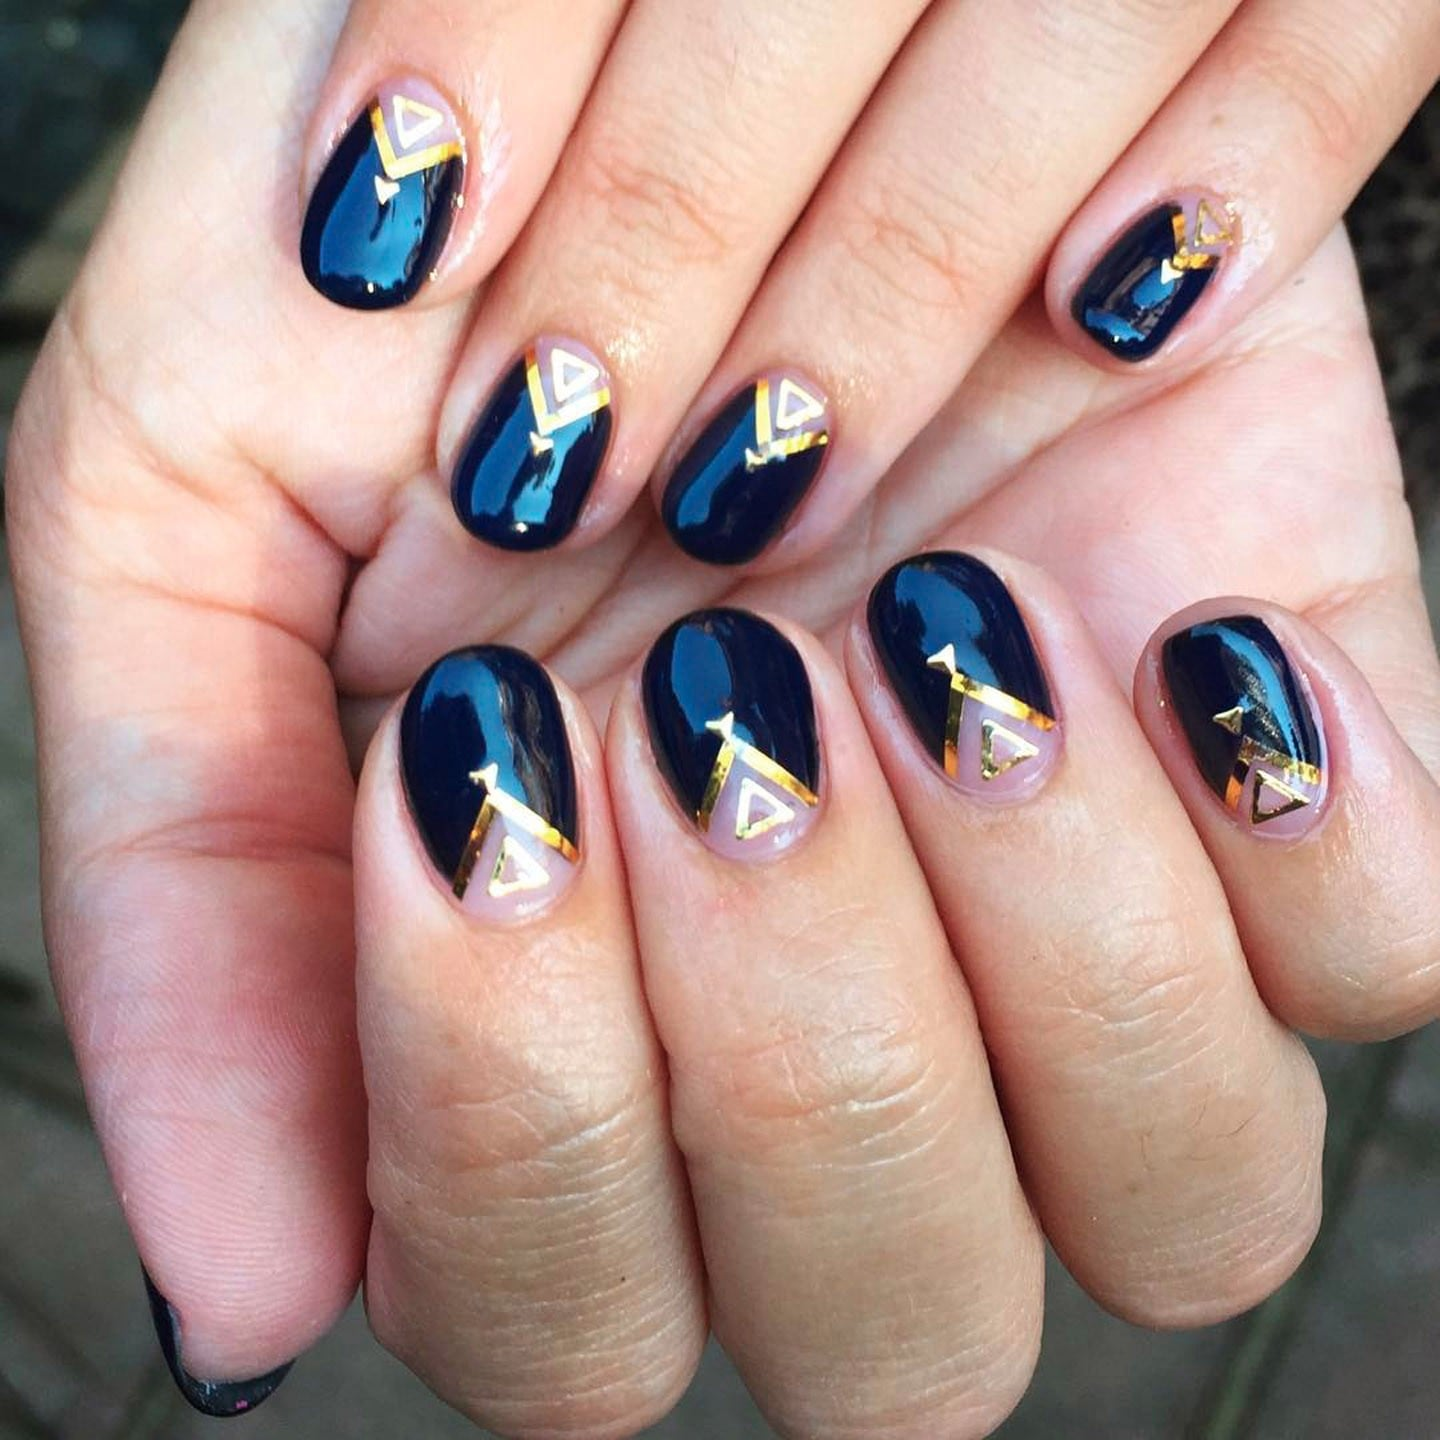 Nail Art Ideas For Short Nails | POPSUGAR Beauty